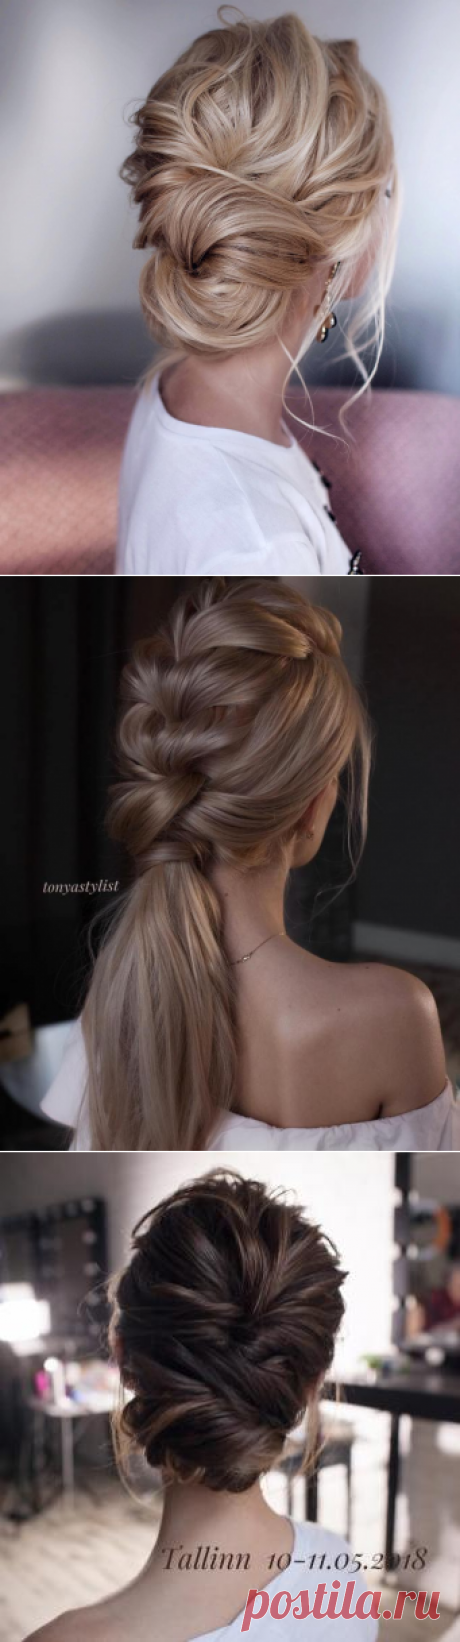 80 wedding hairstyle for medium long hair - Hairstyles Trends